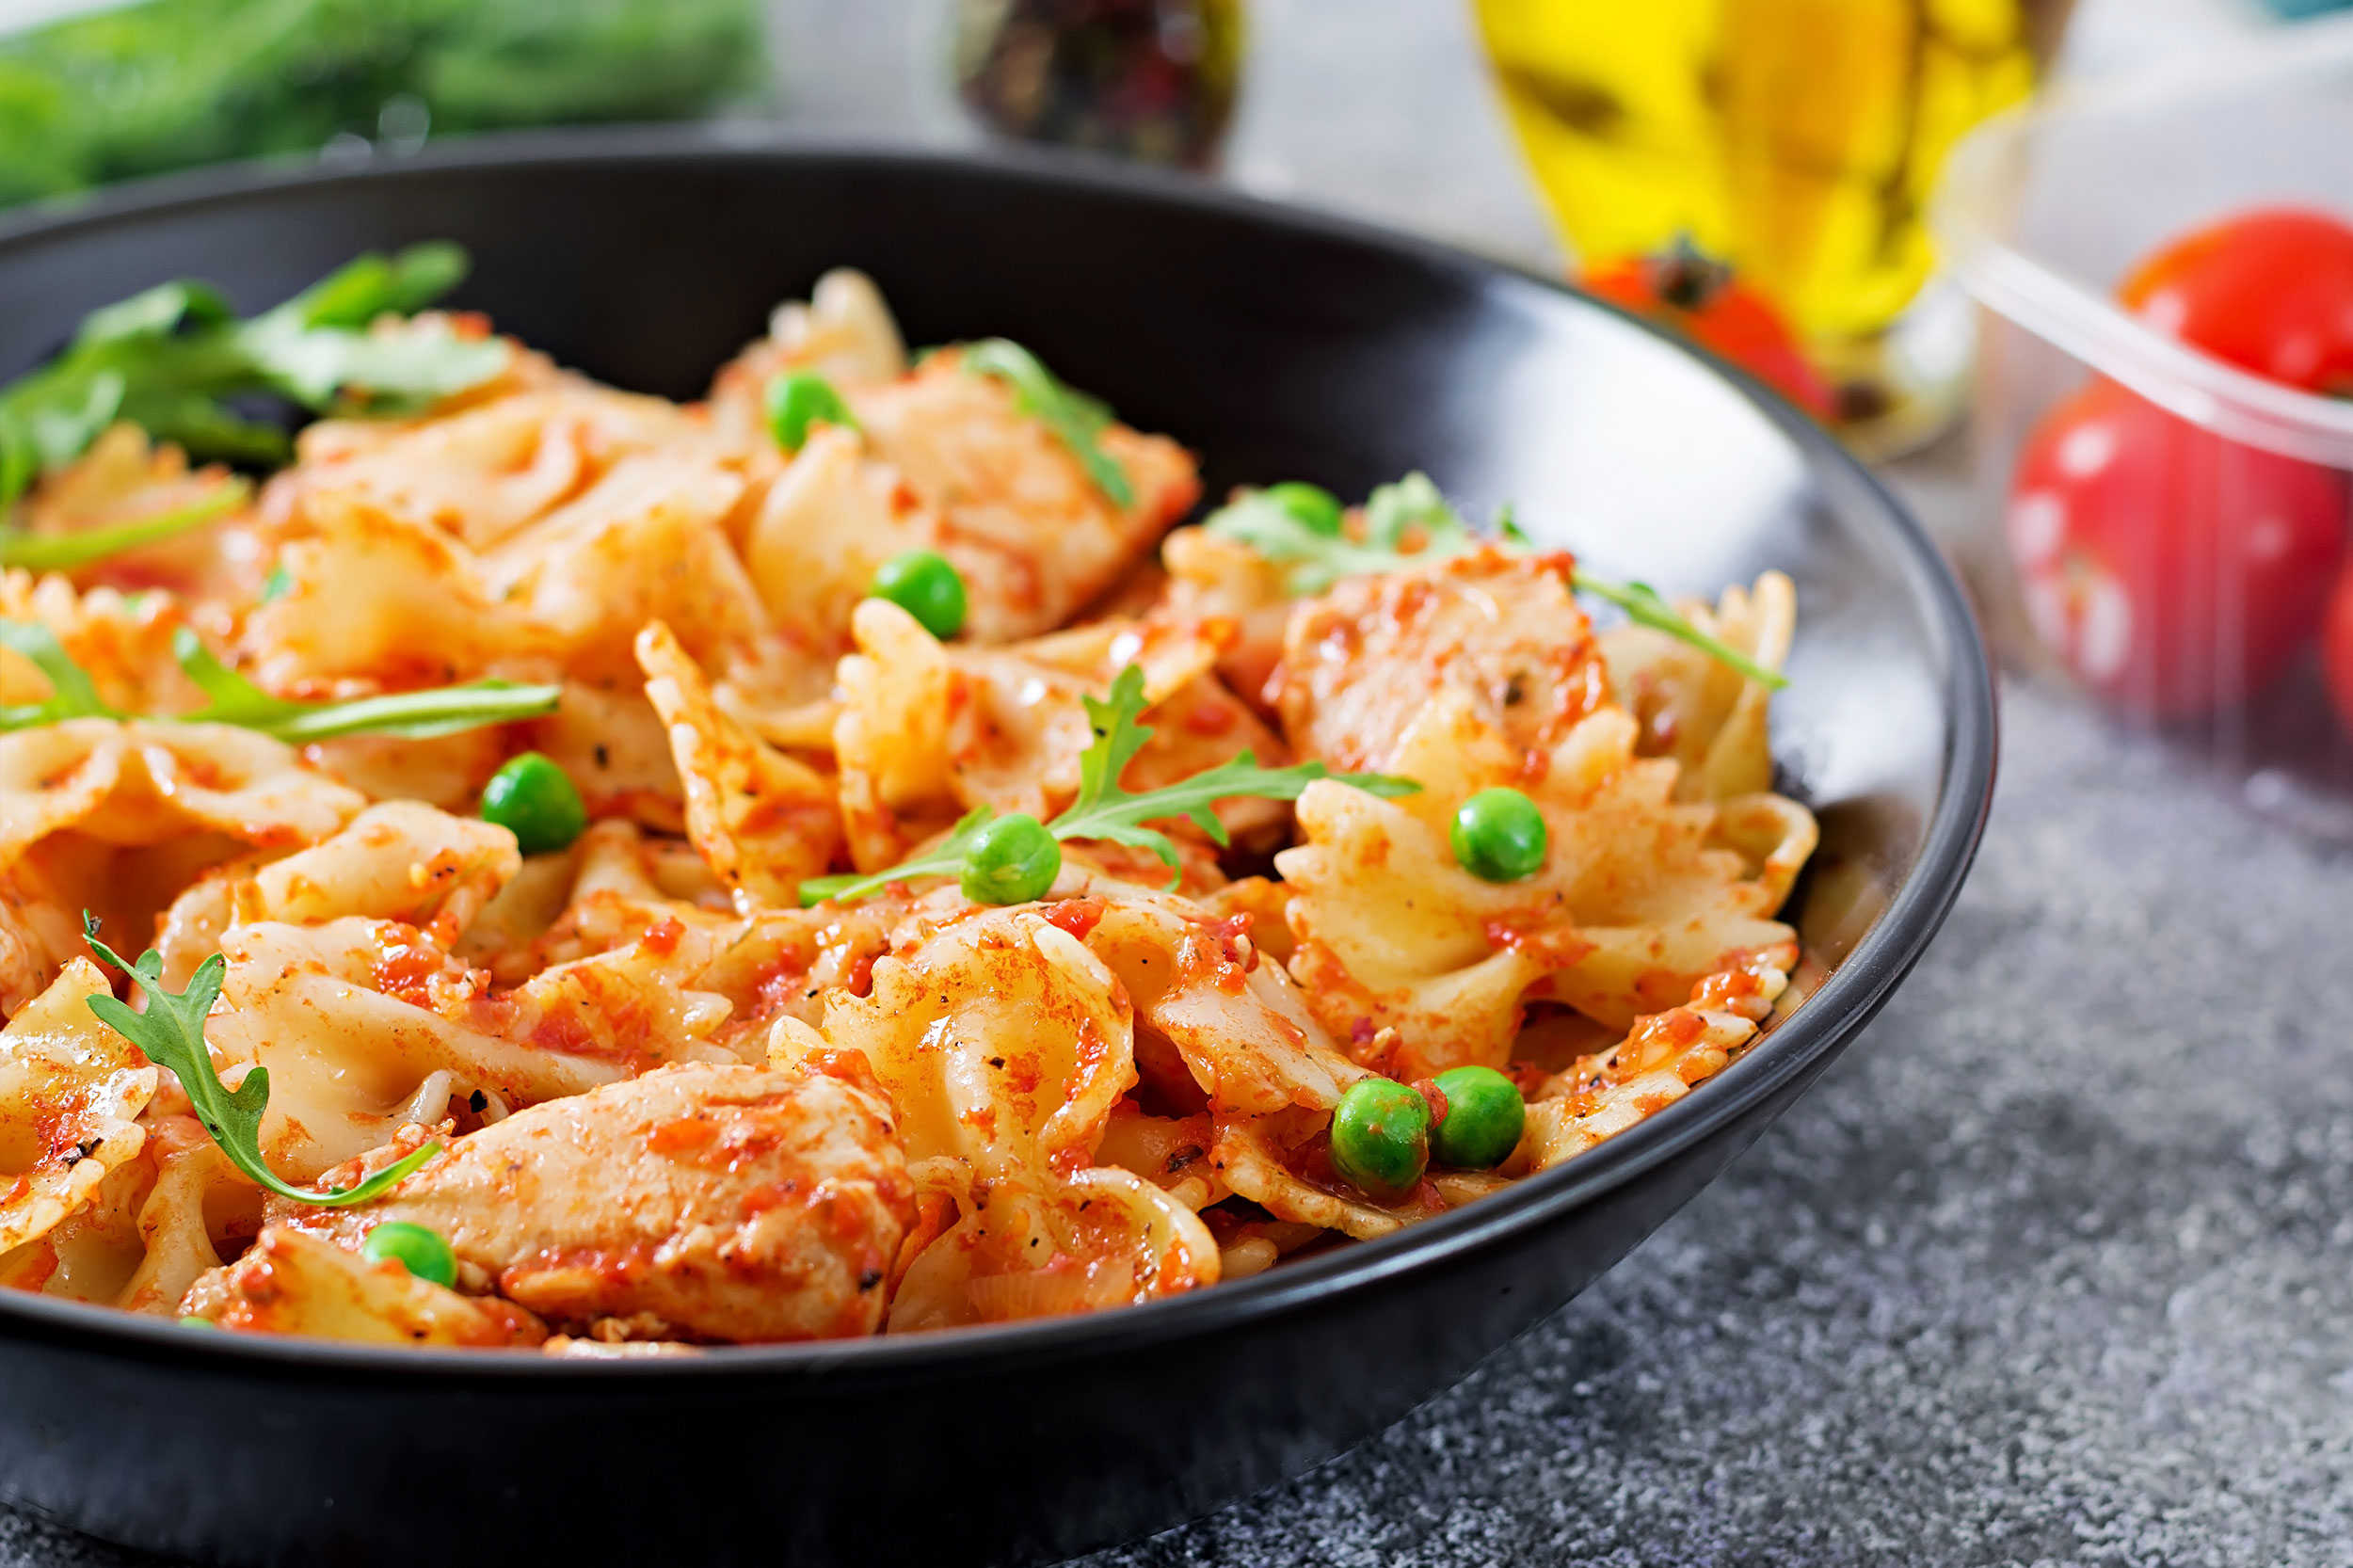 Marios Italian Deli | Picture of Chicken Alla Vodka and Farfalle